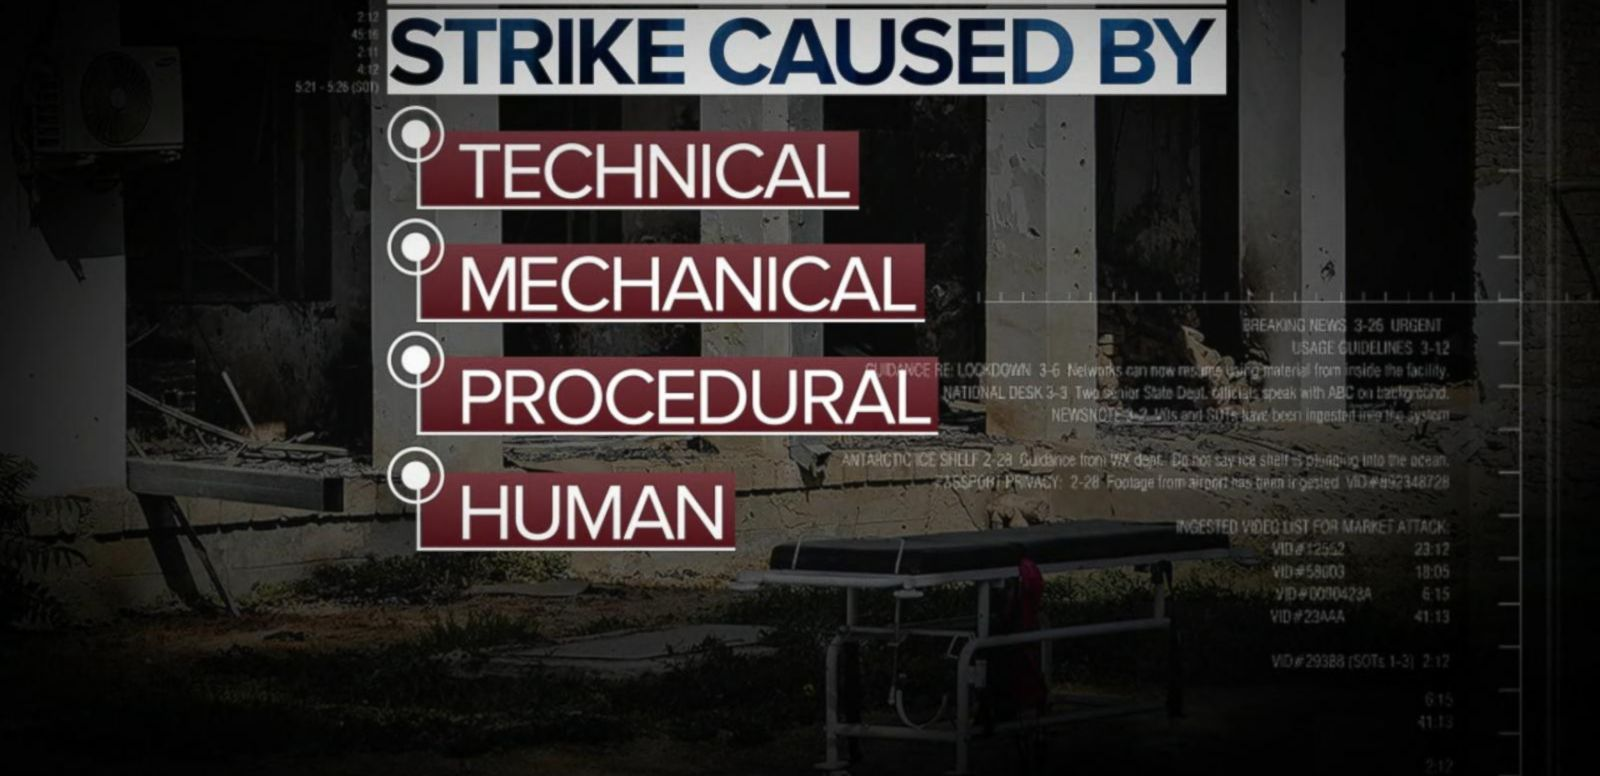 VIDEO: Pentagon Bombshell: 'Avoidable Human Error' Caused Deadly Airstrike on Afghan Hospital